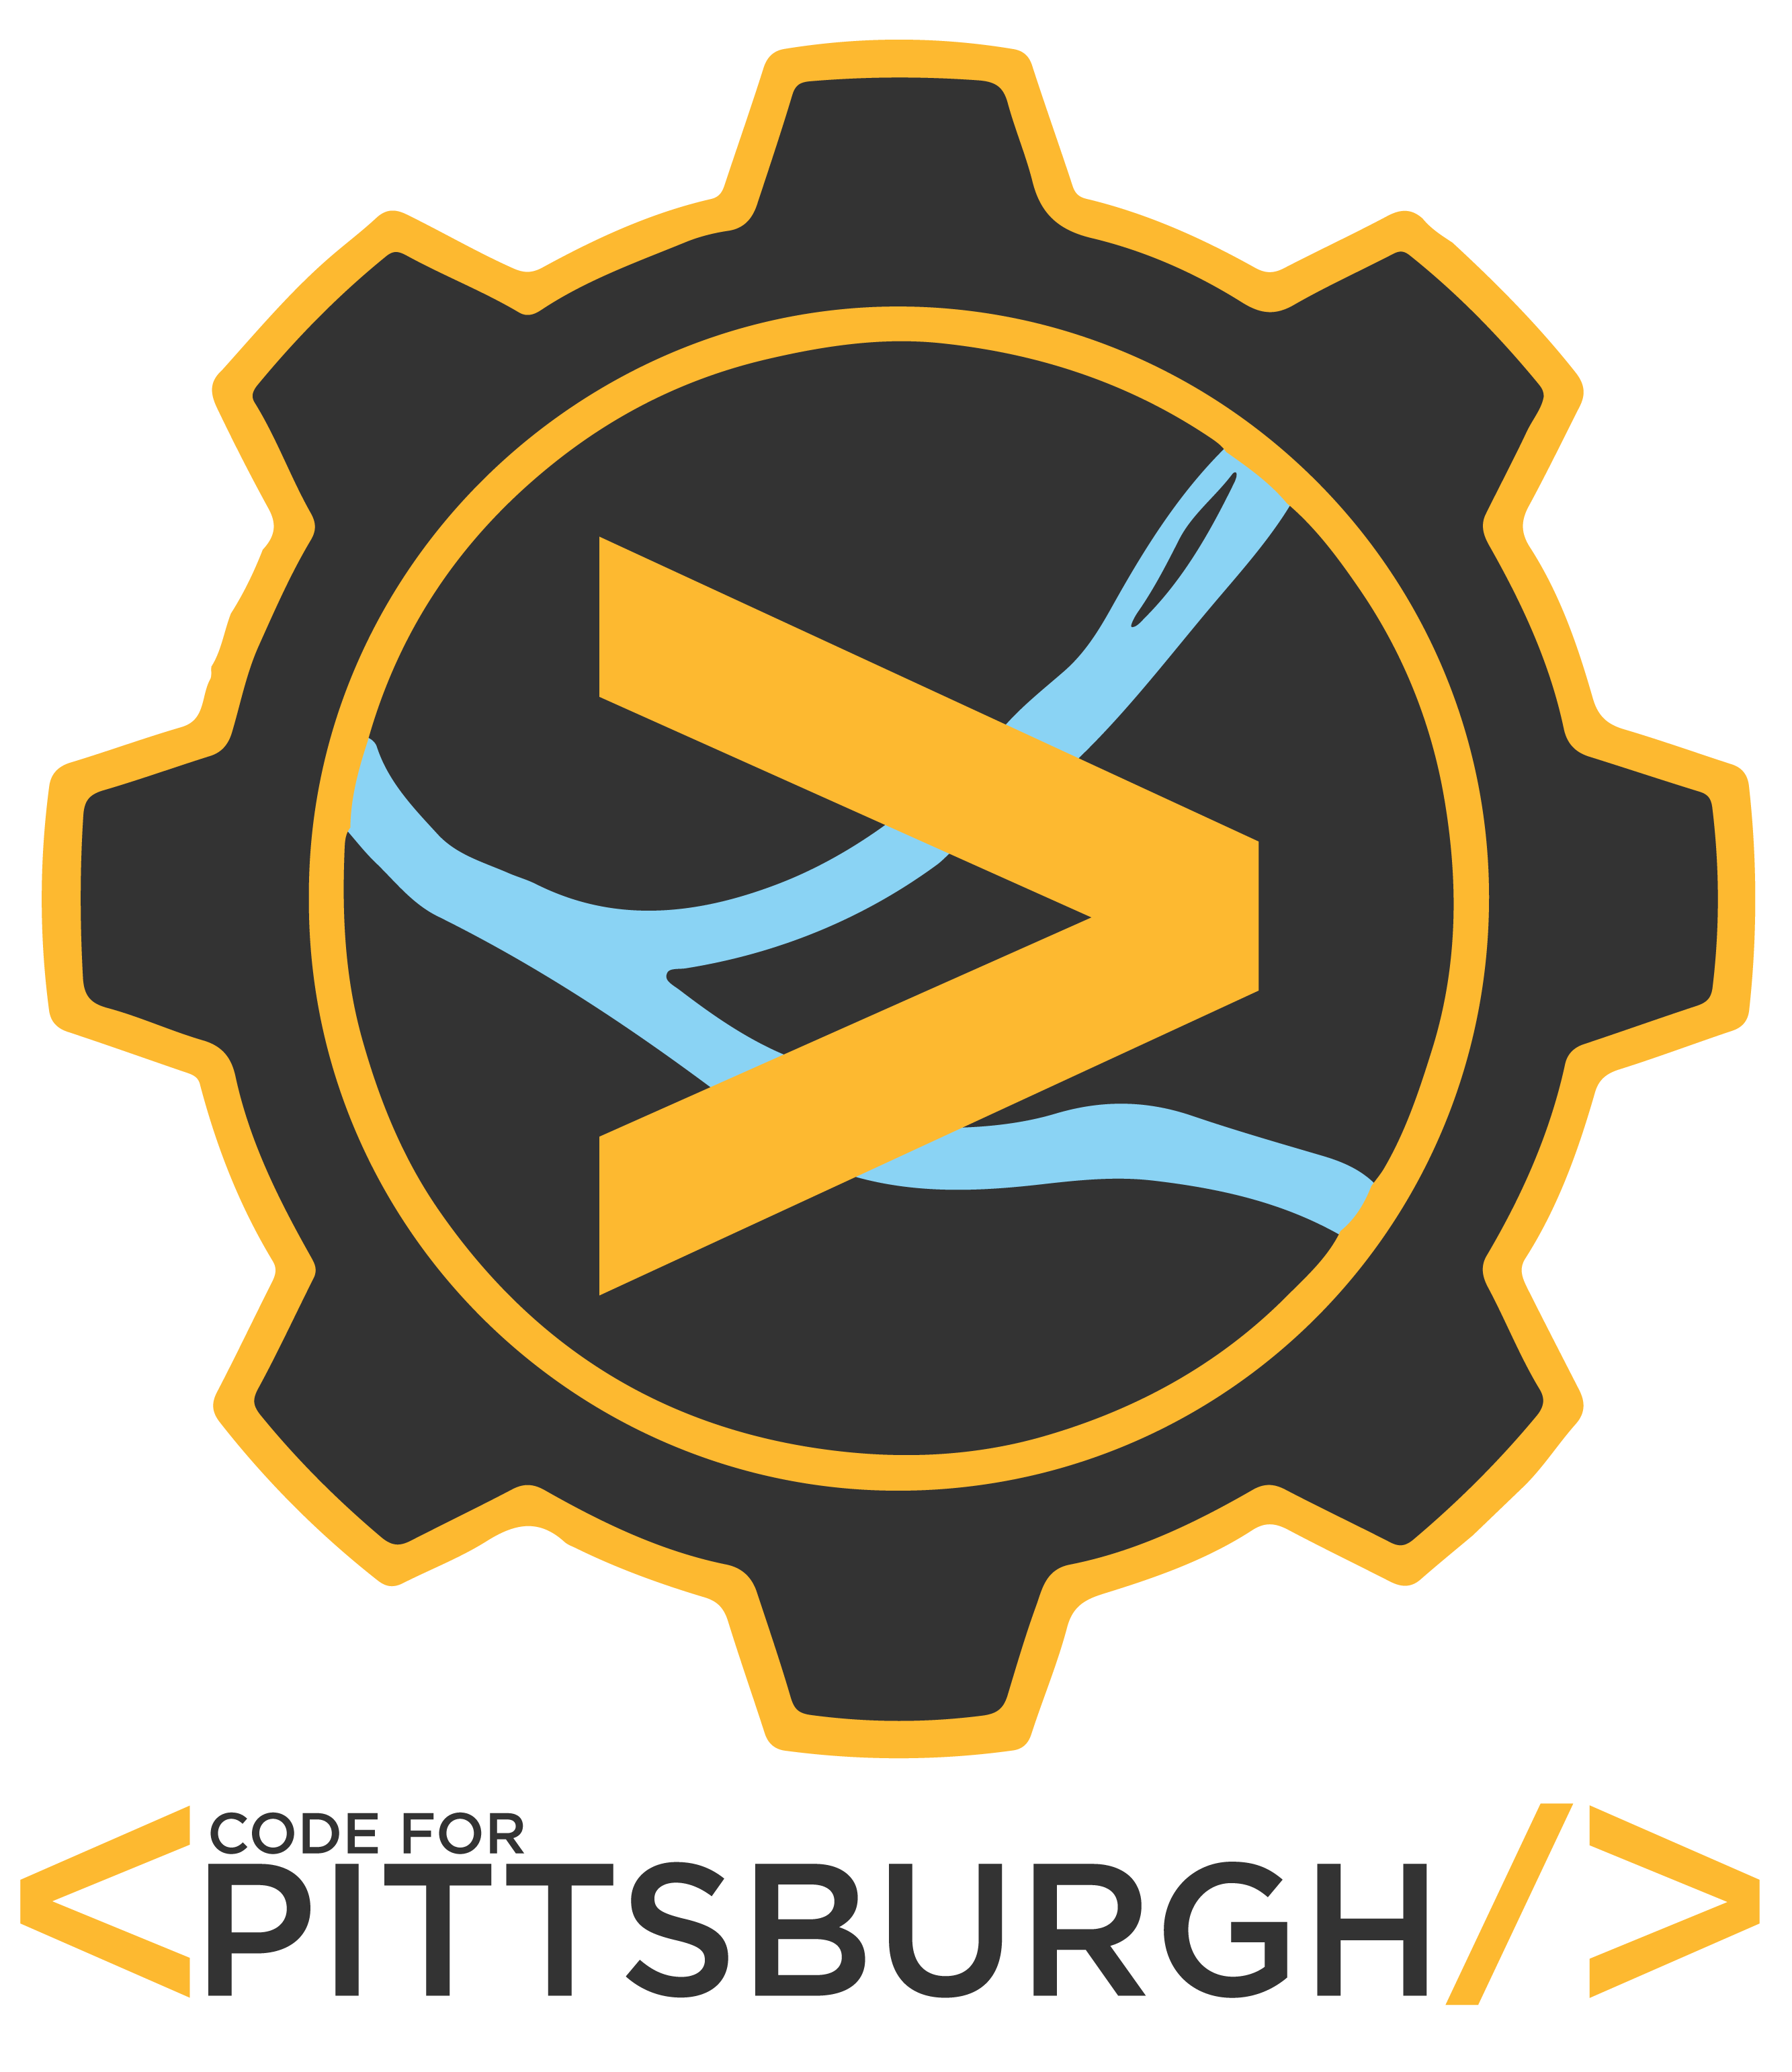 Code for Pittsburgh